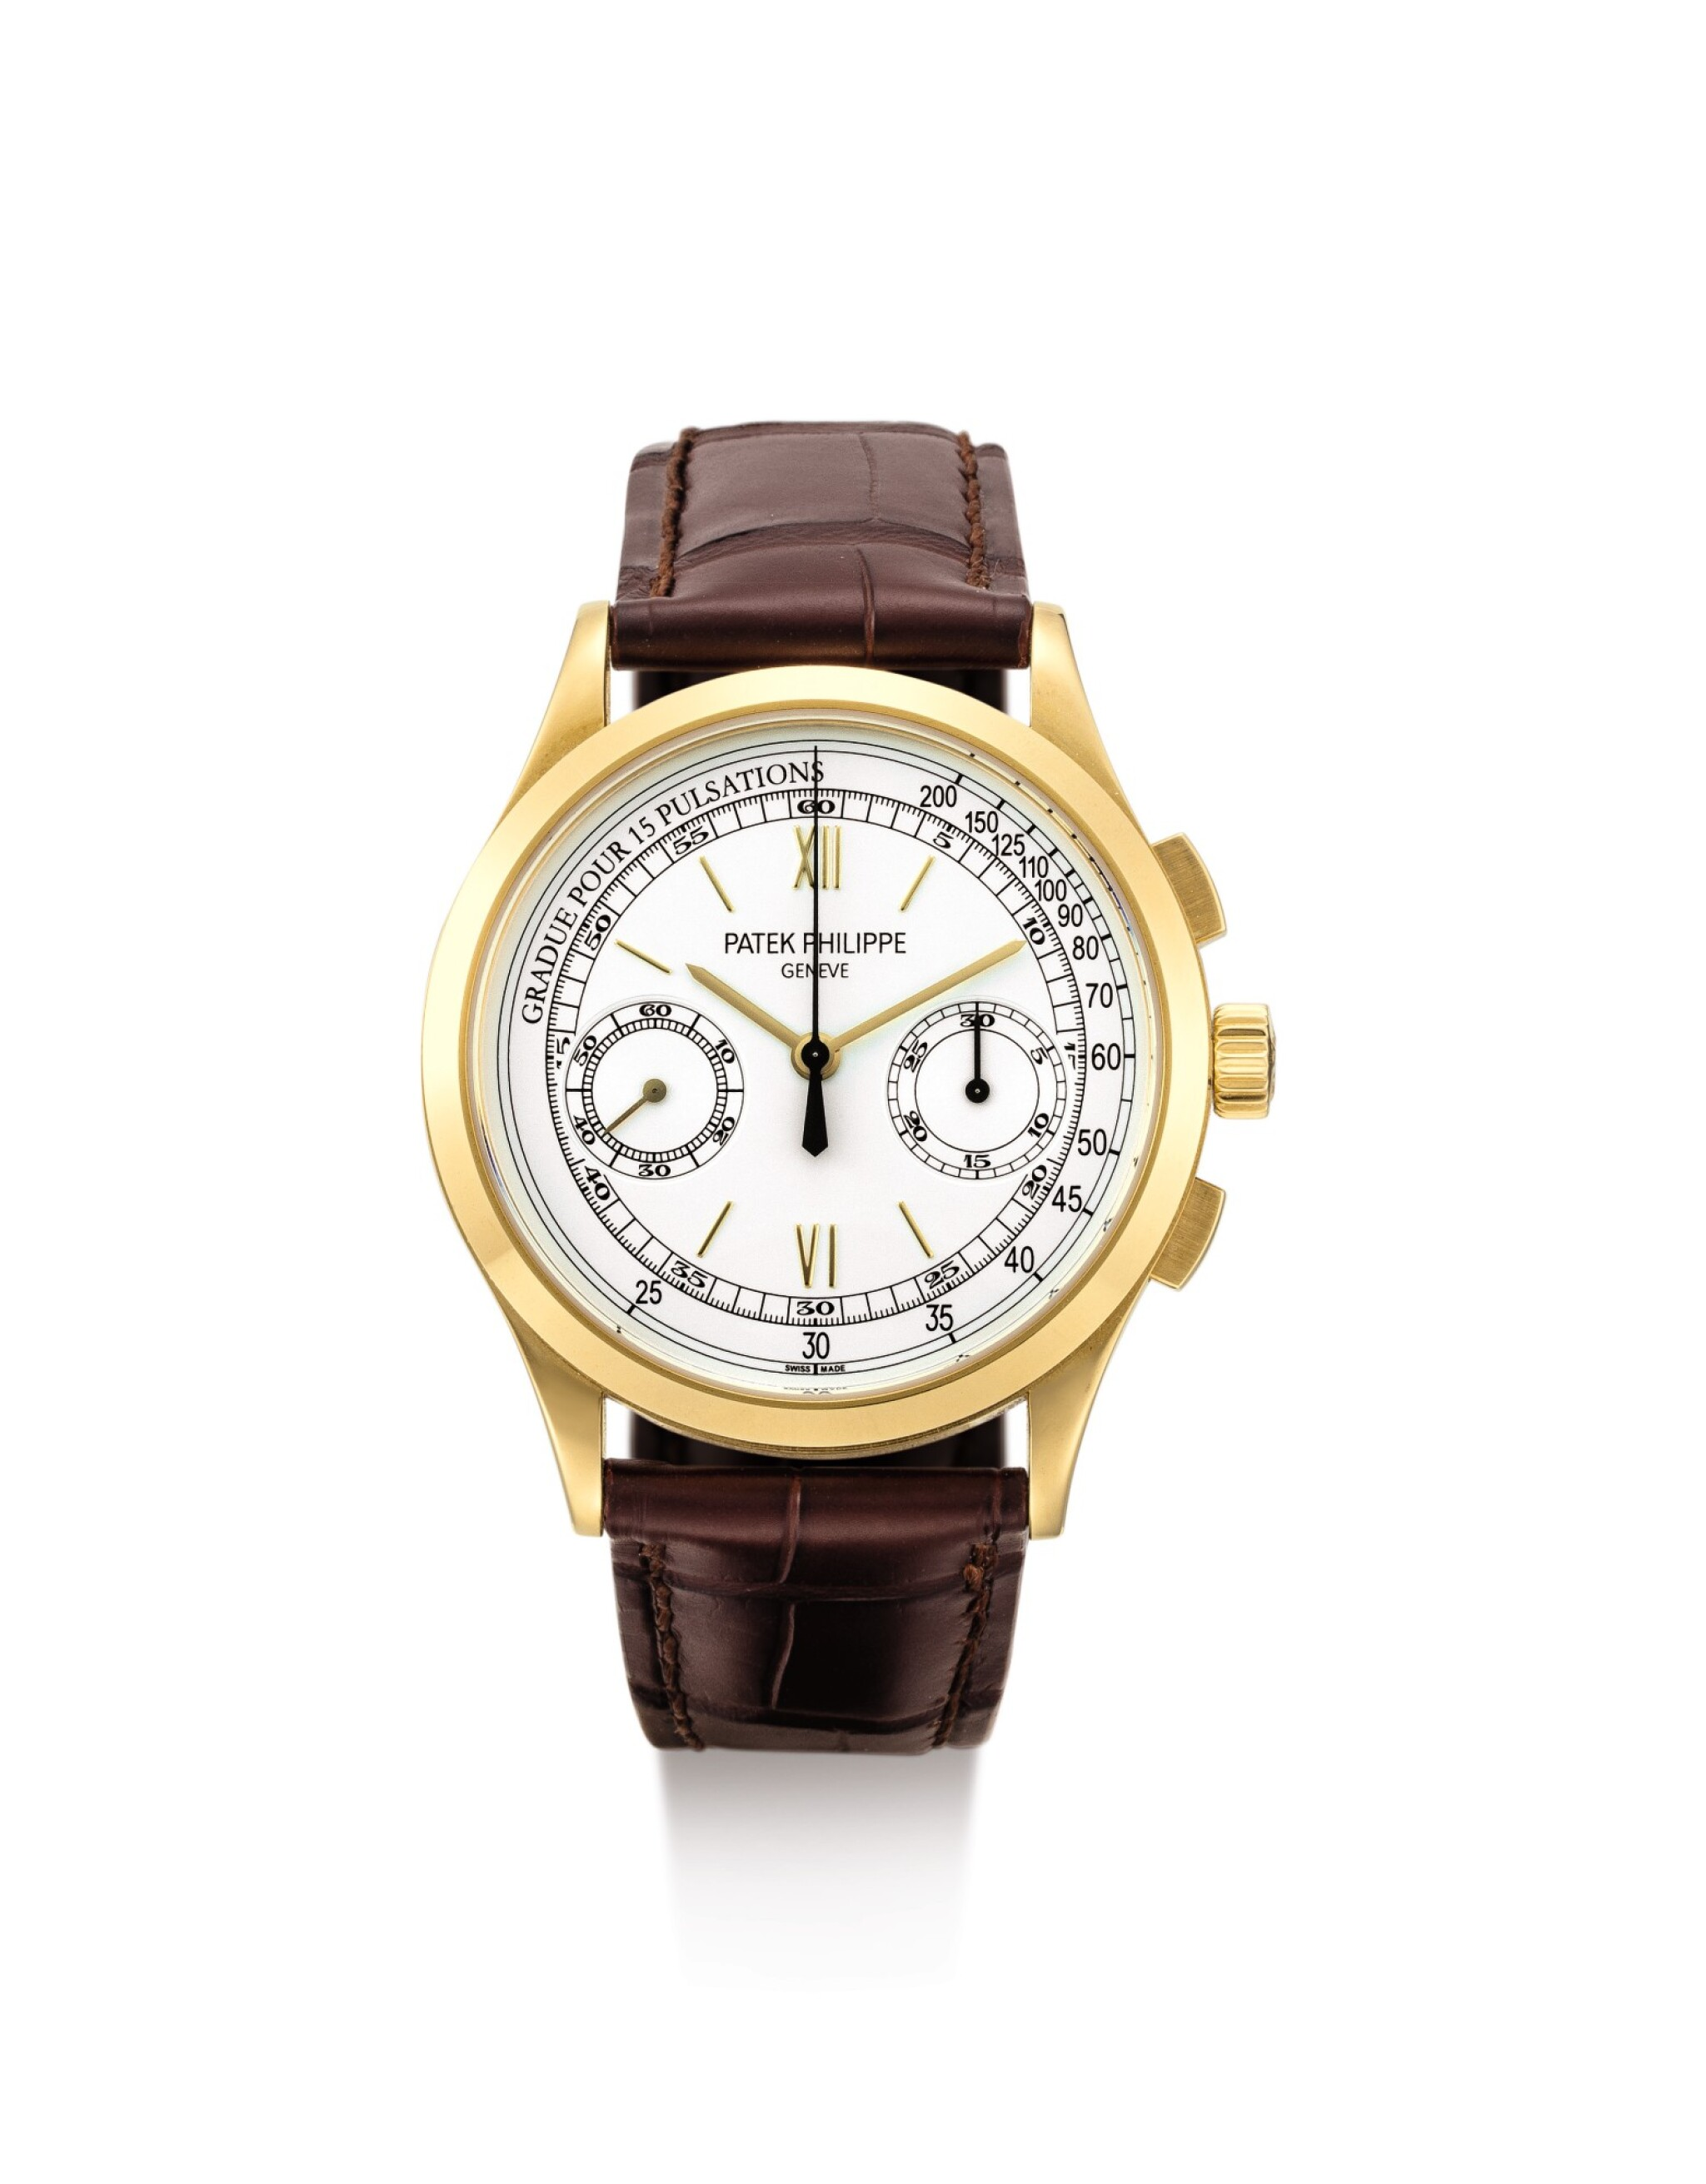 View 1 of Lot 33. PATEK PHILIPPE | REFERENCE 5170, A YELLOW GOLD CHRONOGRAPH WRISTWATCH WITH PULSATION SCALE, CIRCA 2011.